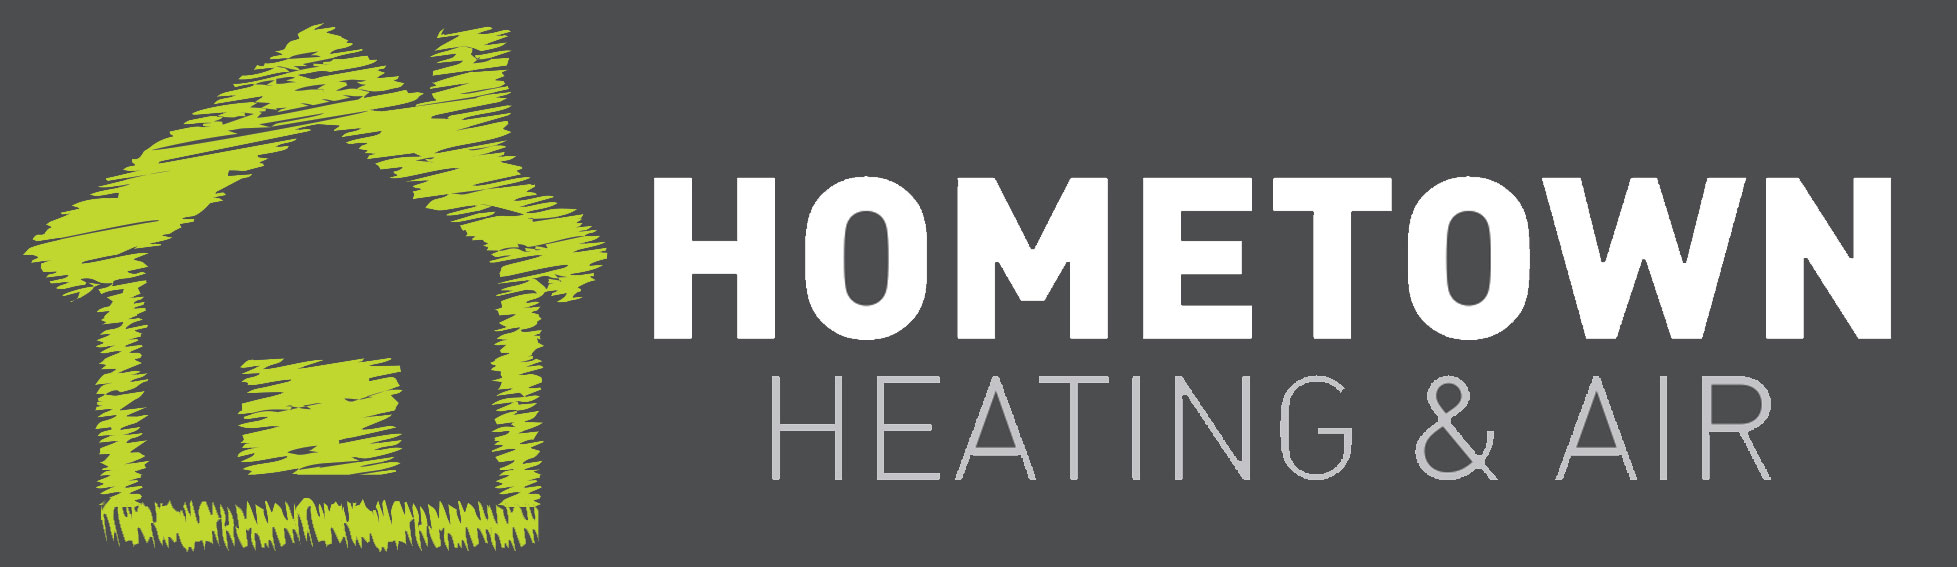 Hometown Heating & Air